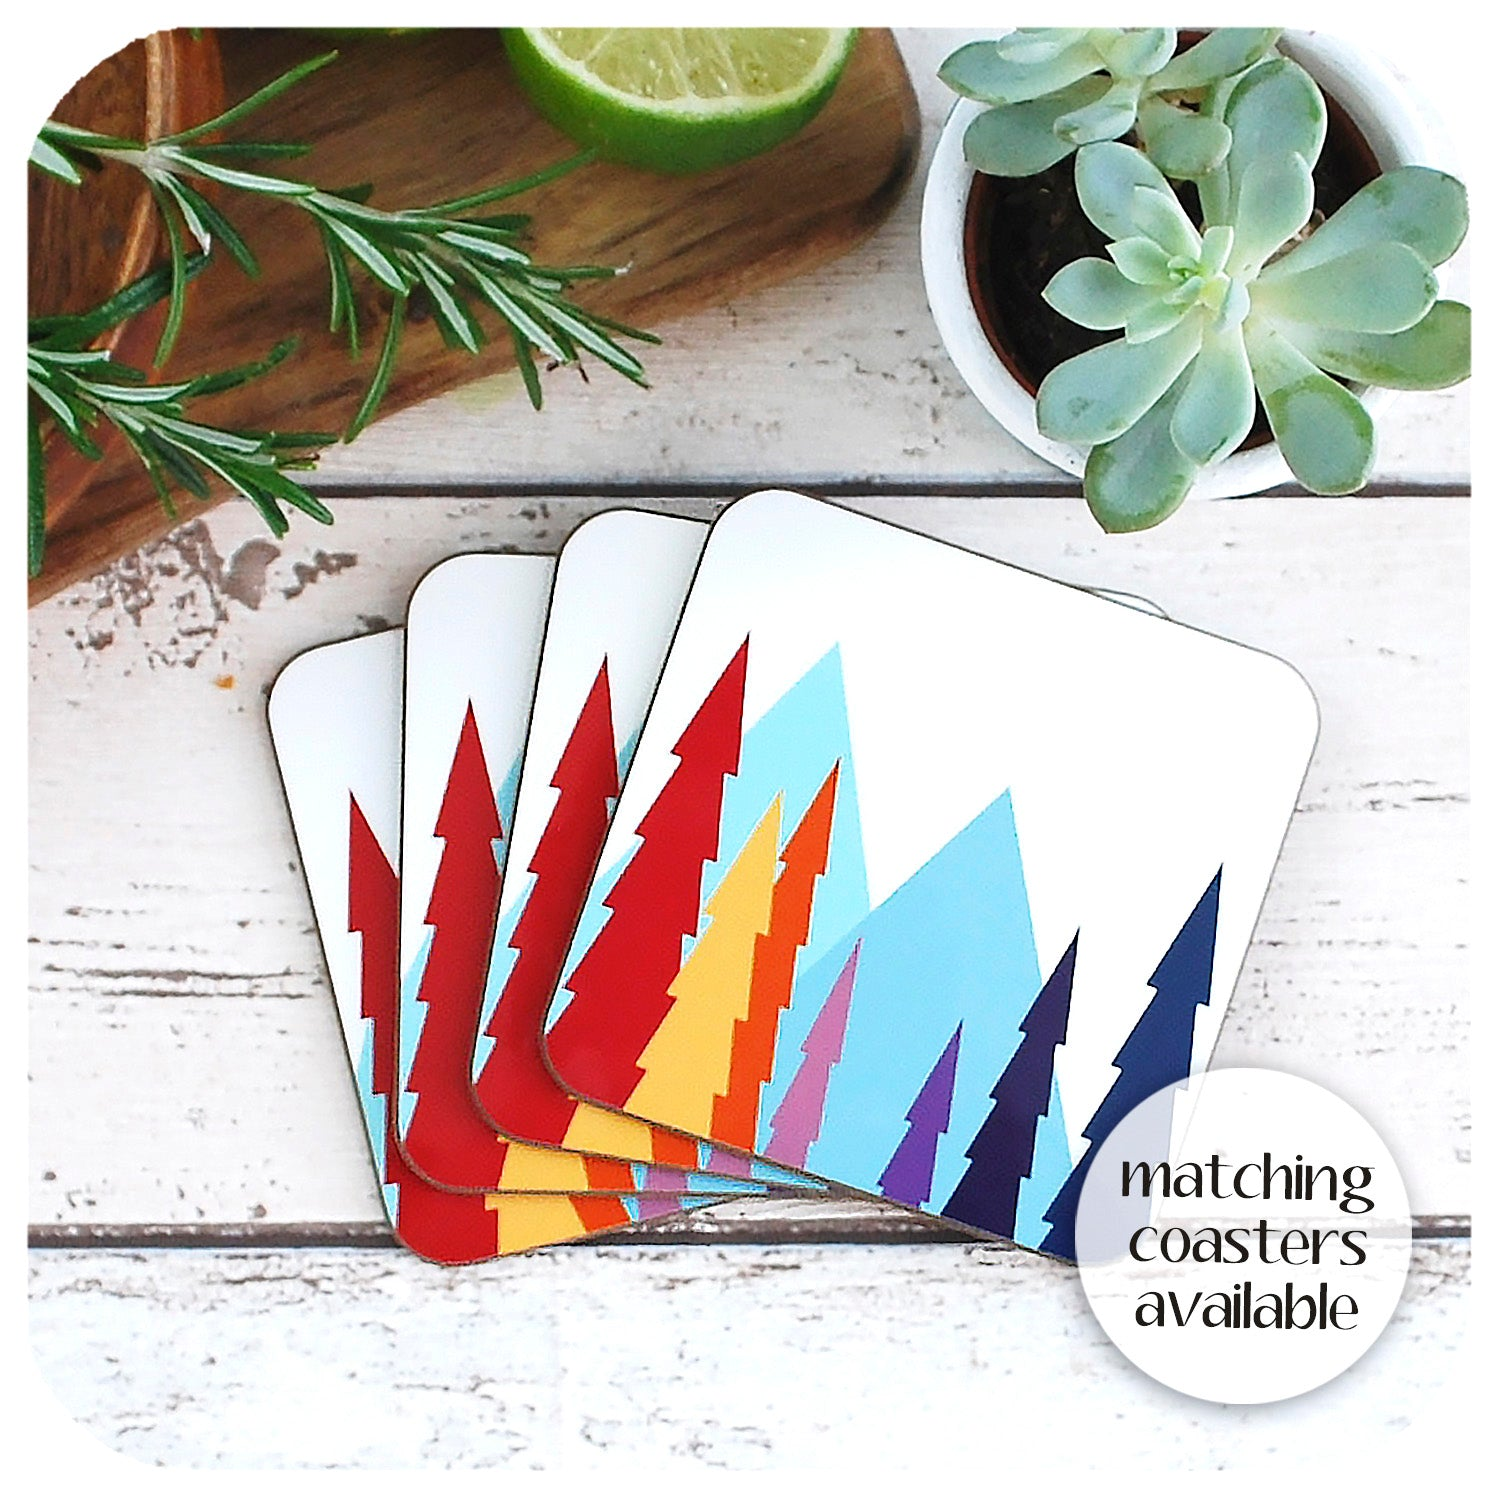 Matching Nordic Trees Coasters available | The Inkabilly Emporium